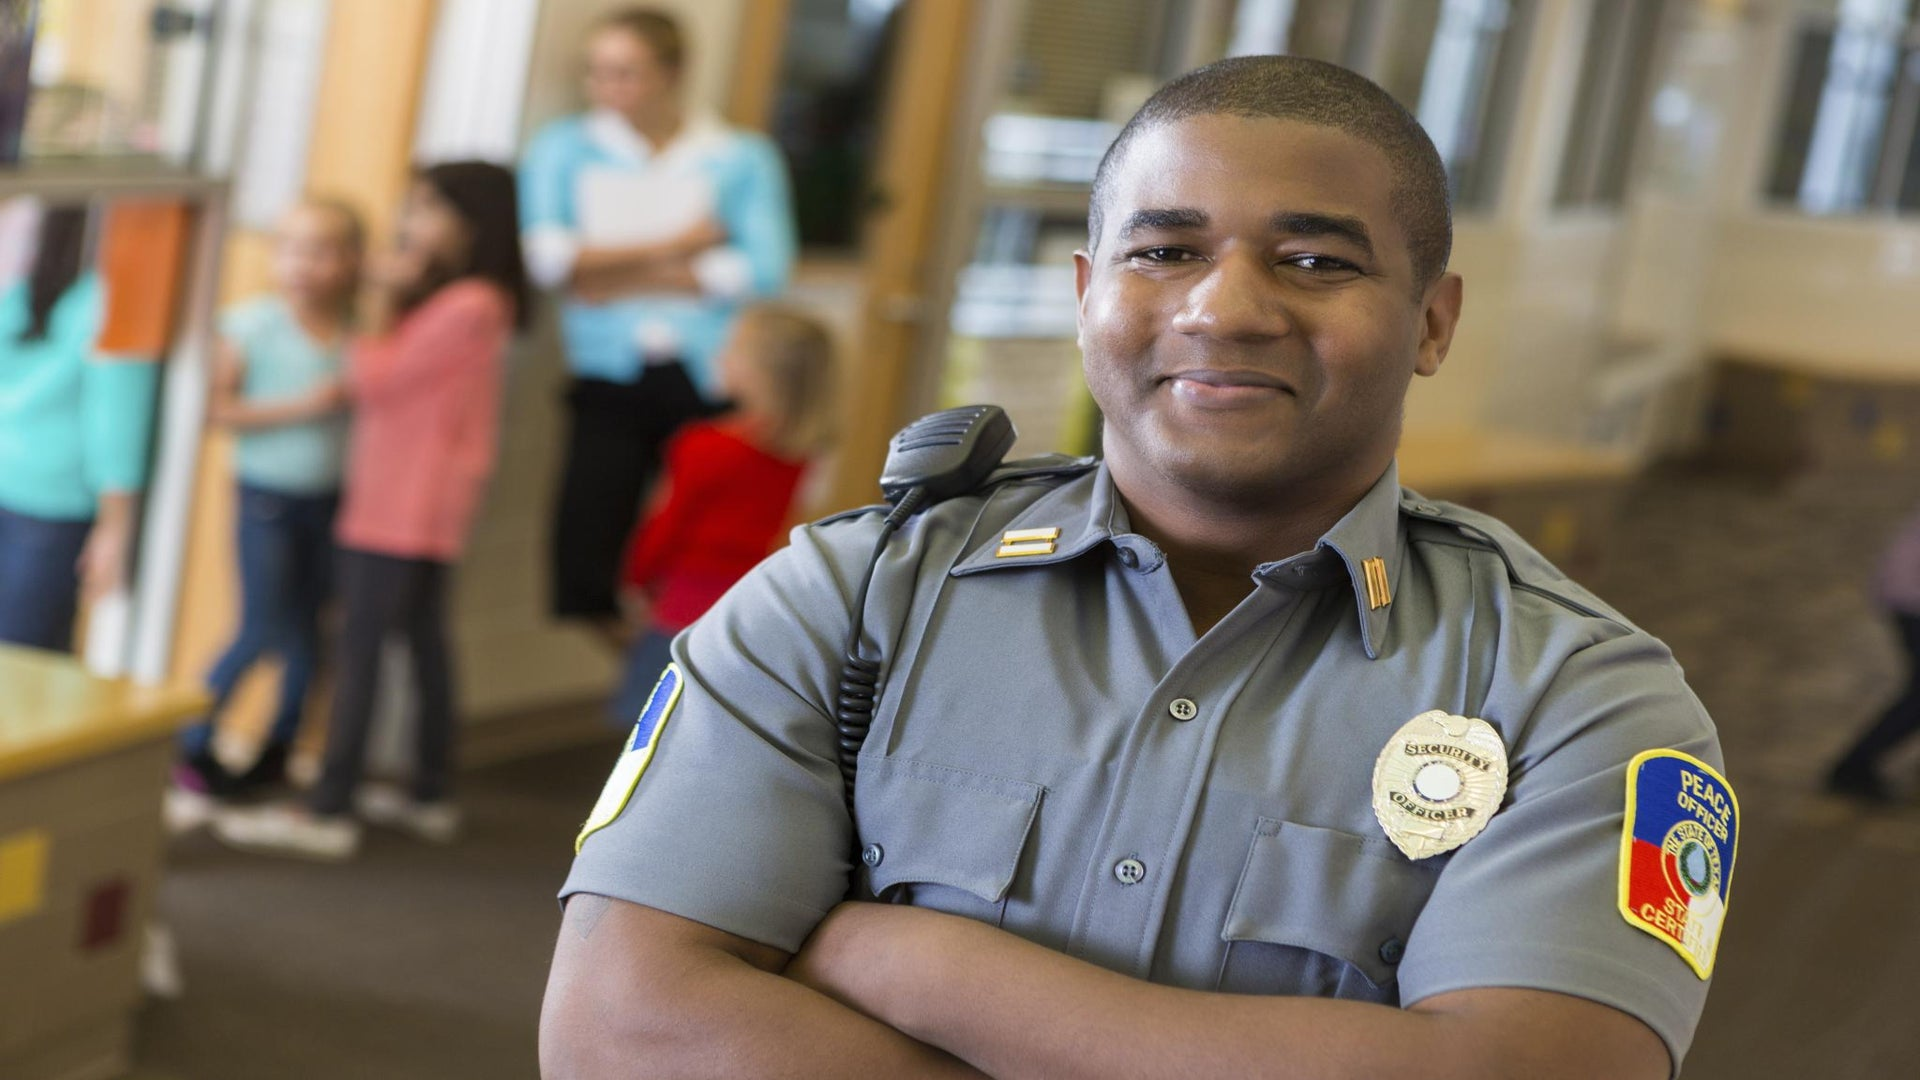 ESSENCE Poll: Are You Familiar With Your Child's School Security Protocol?